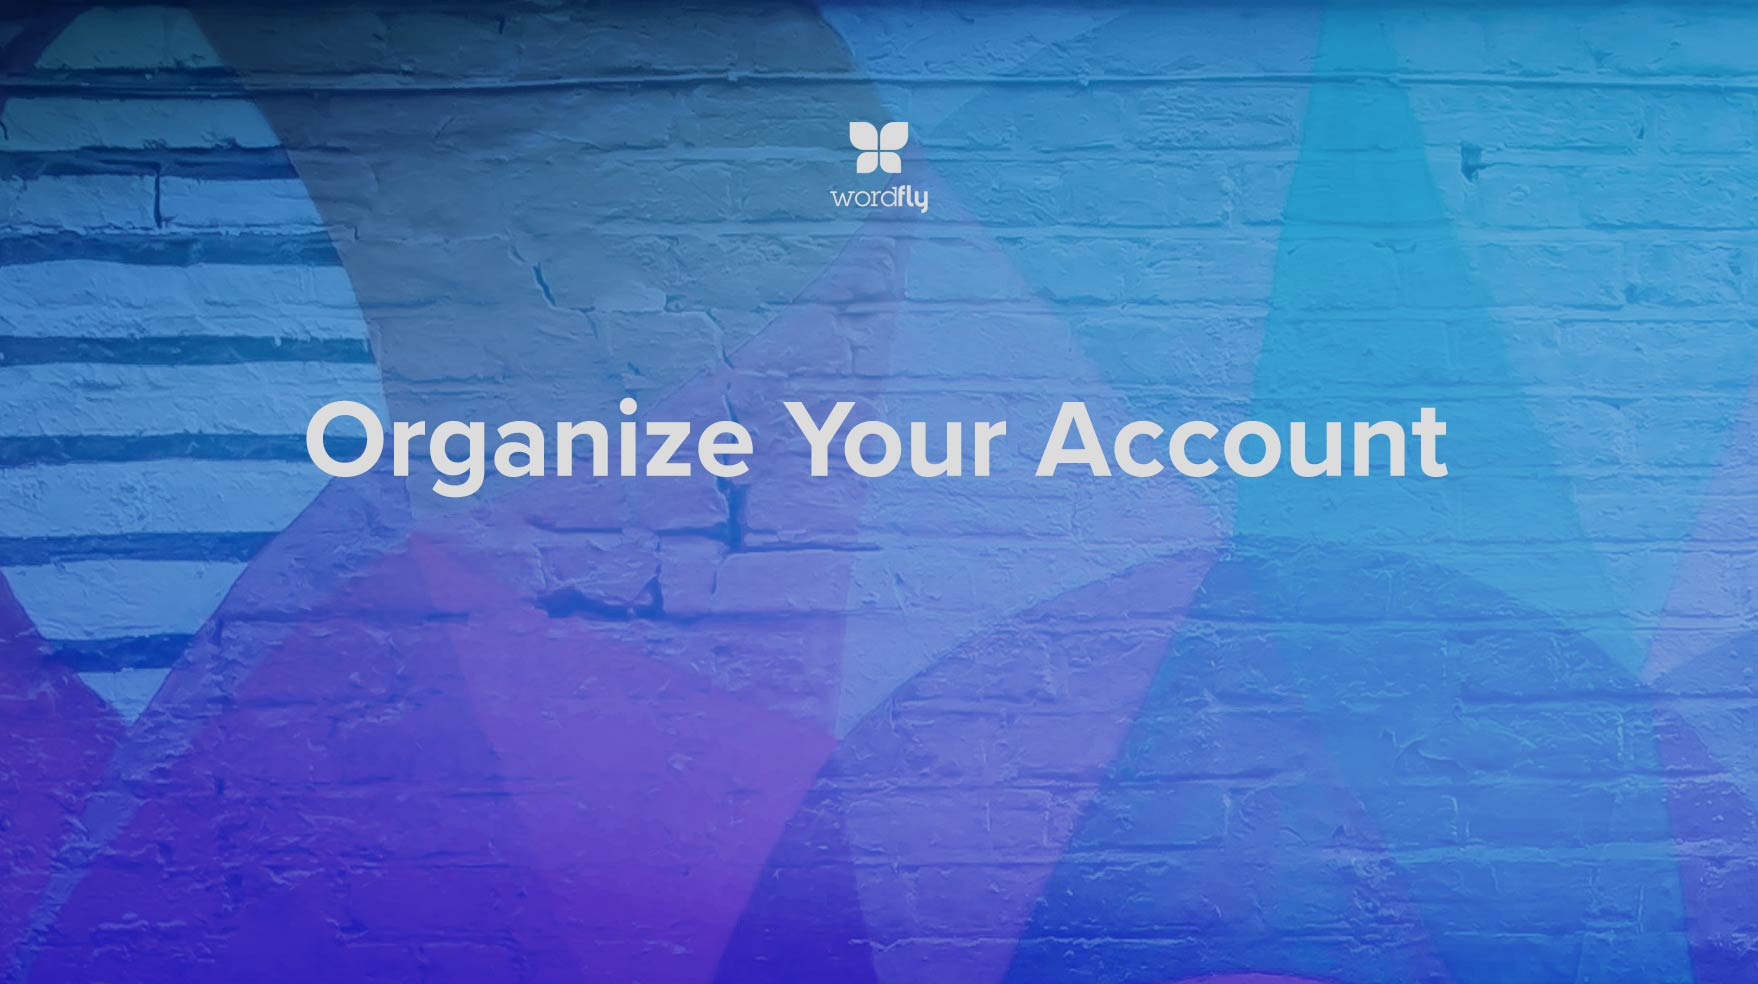 Organize Your Account